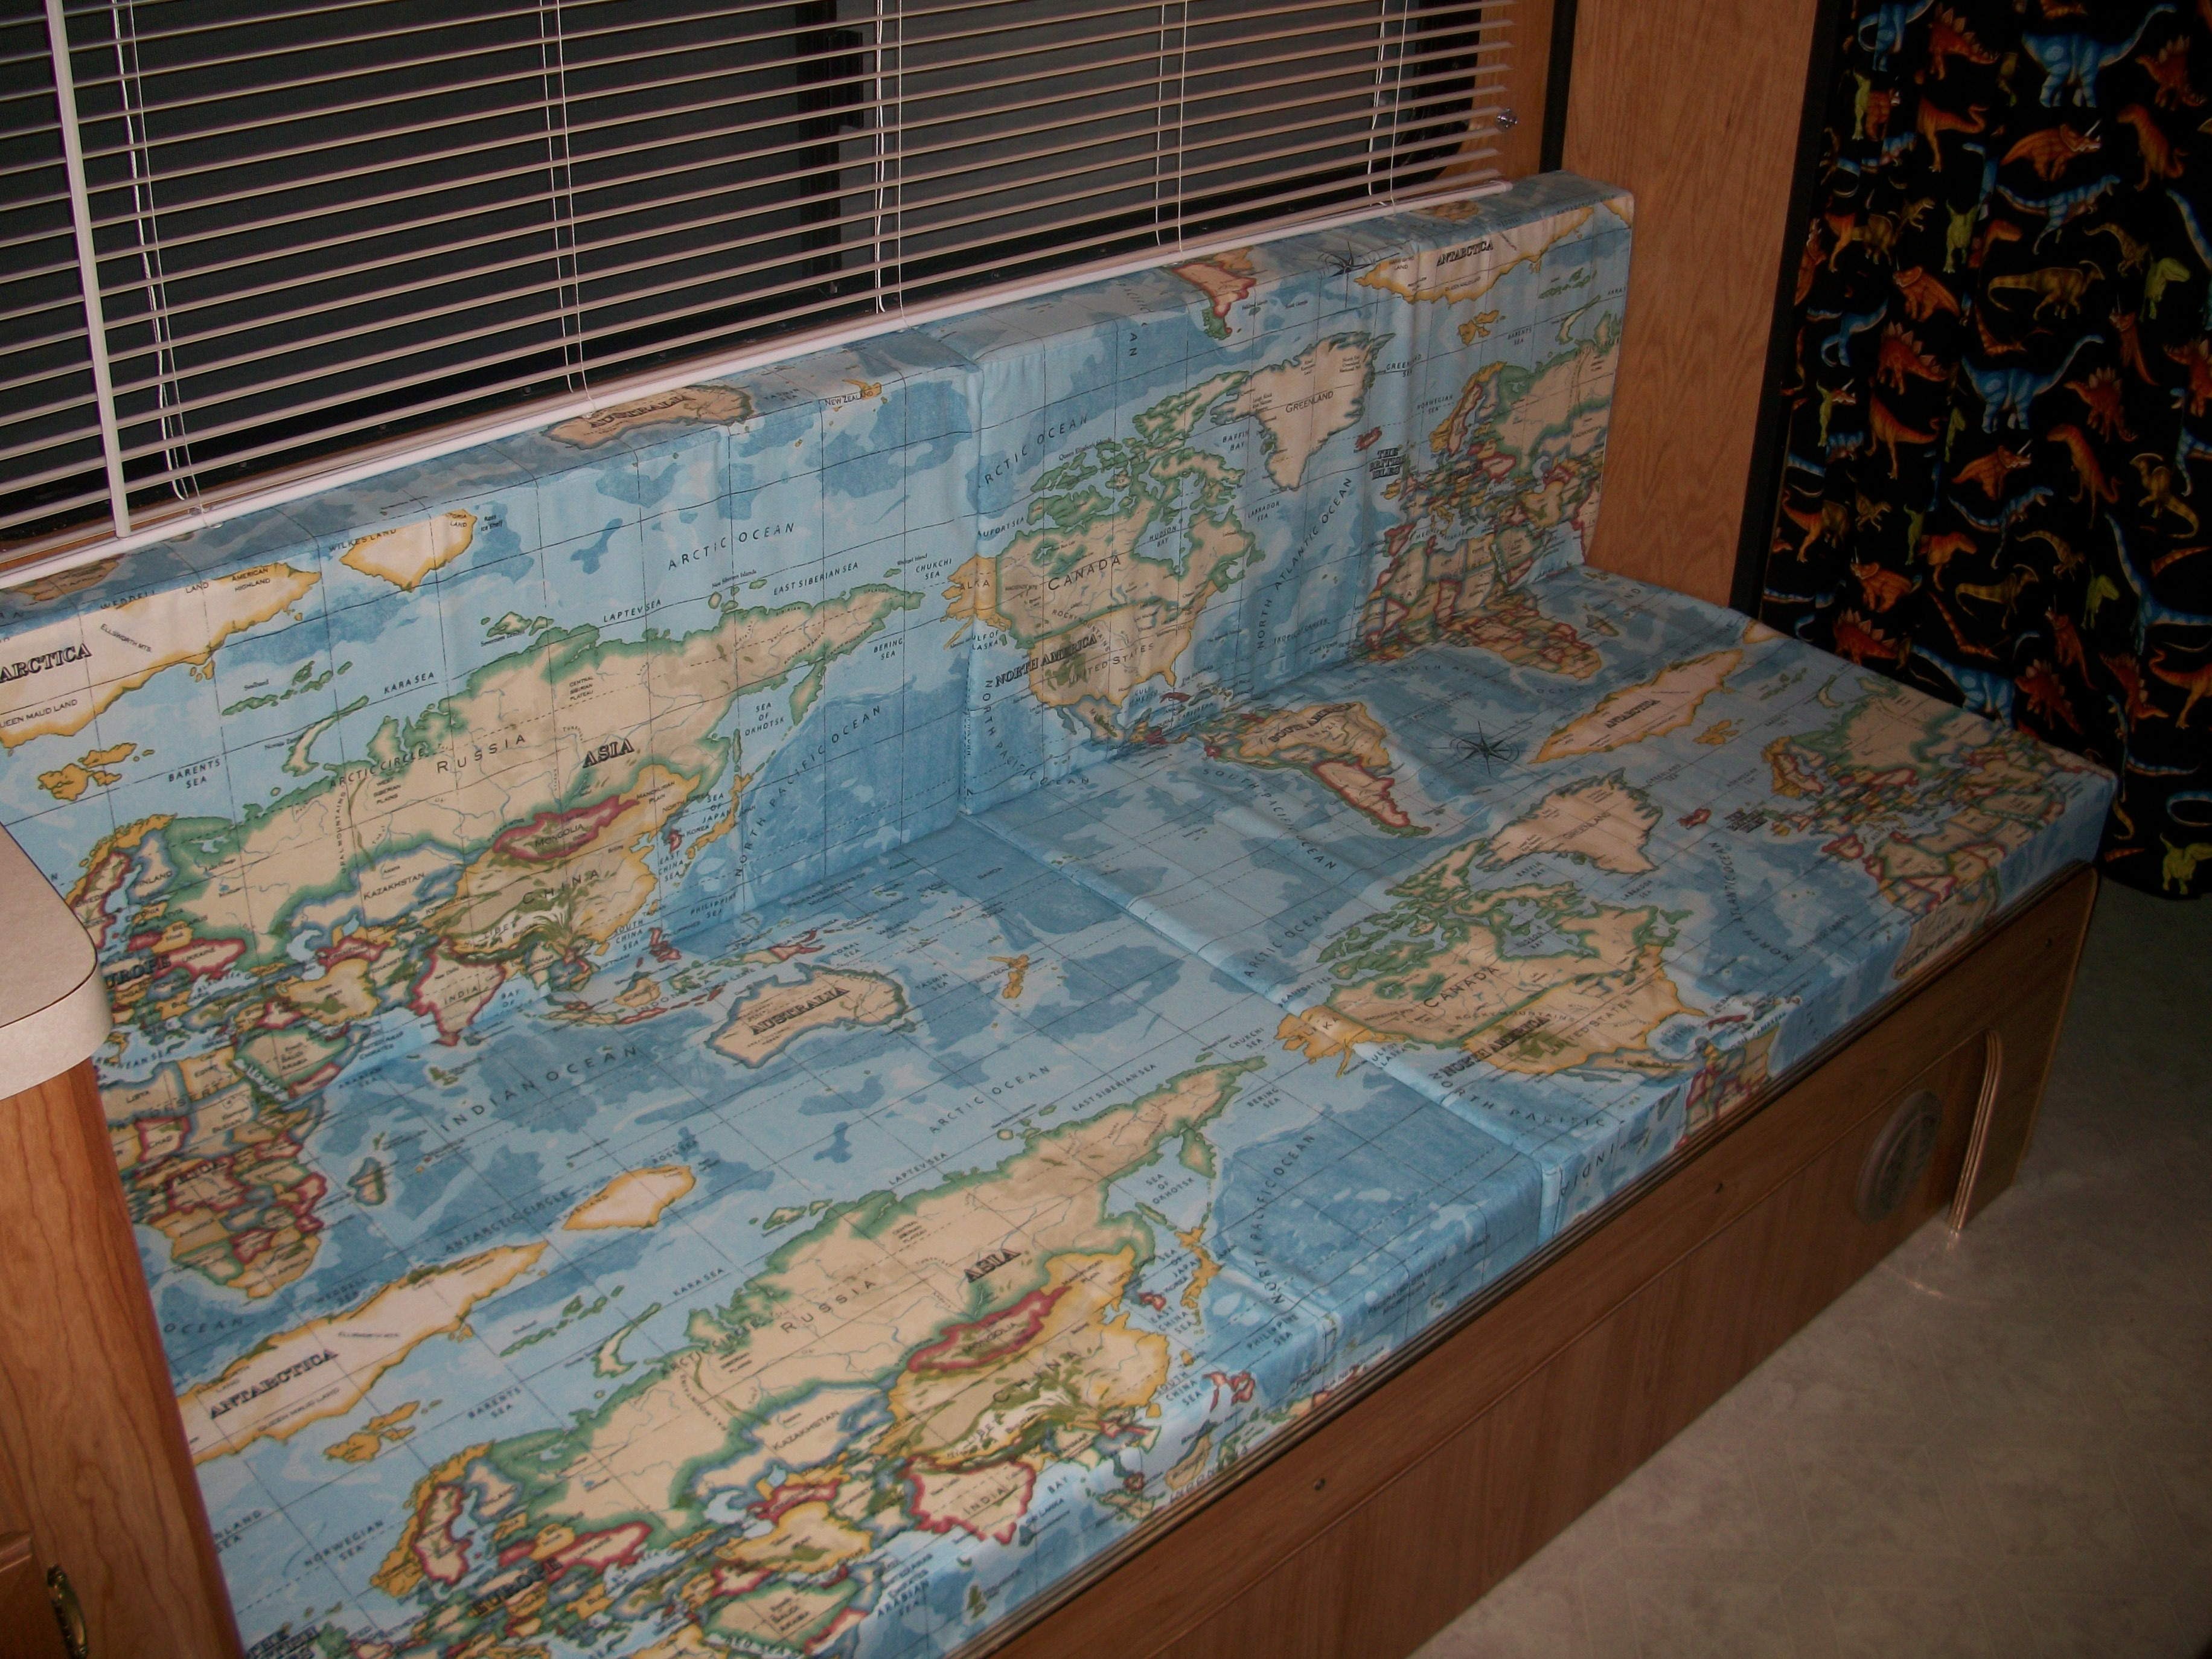 World map fabric adds finishing touch to mobile museum ministry